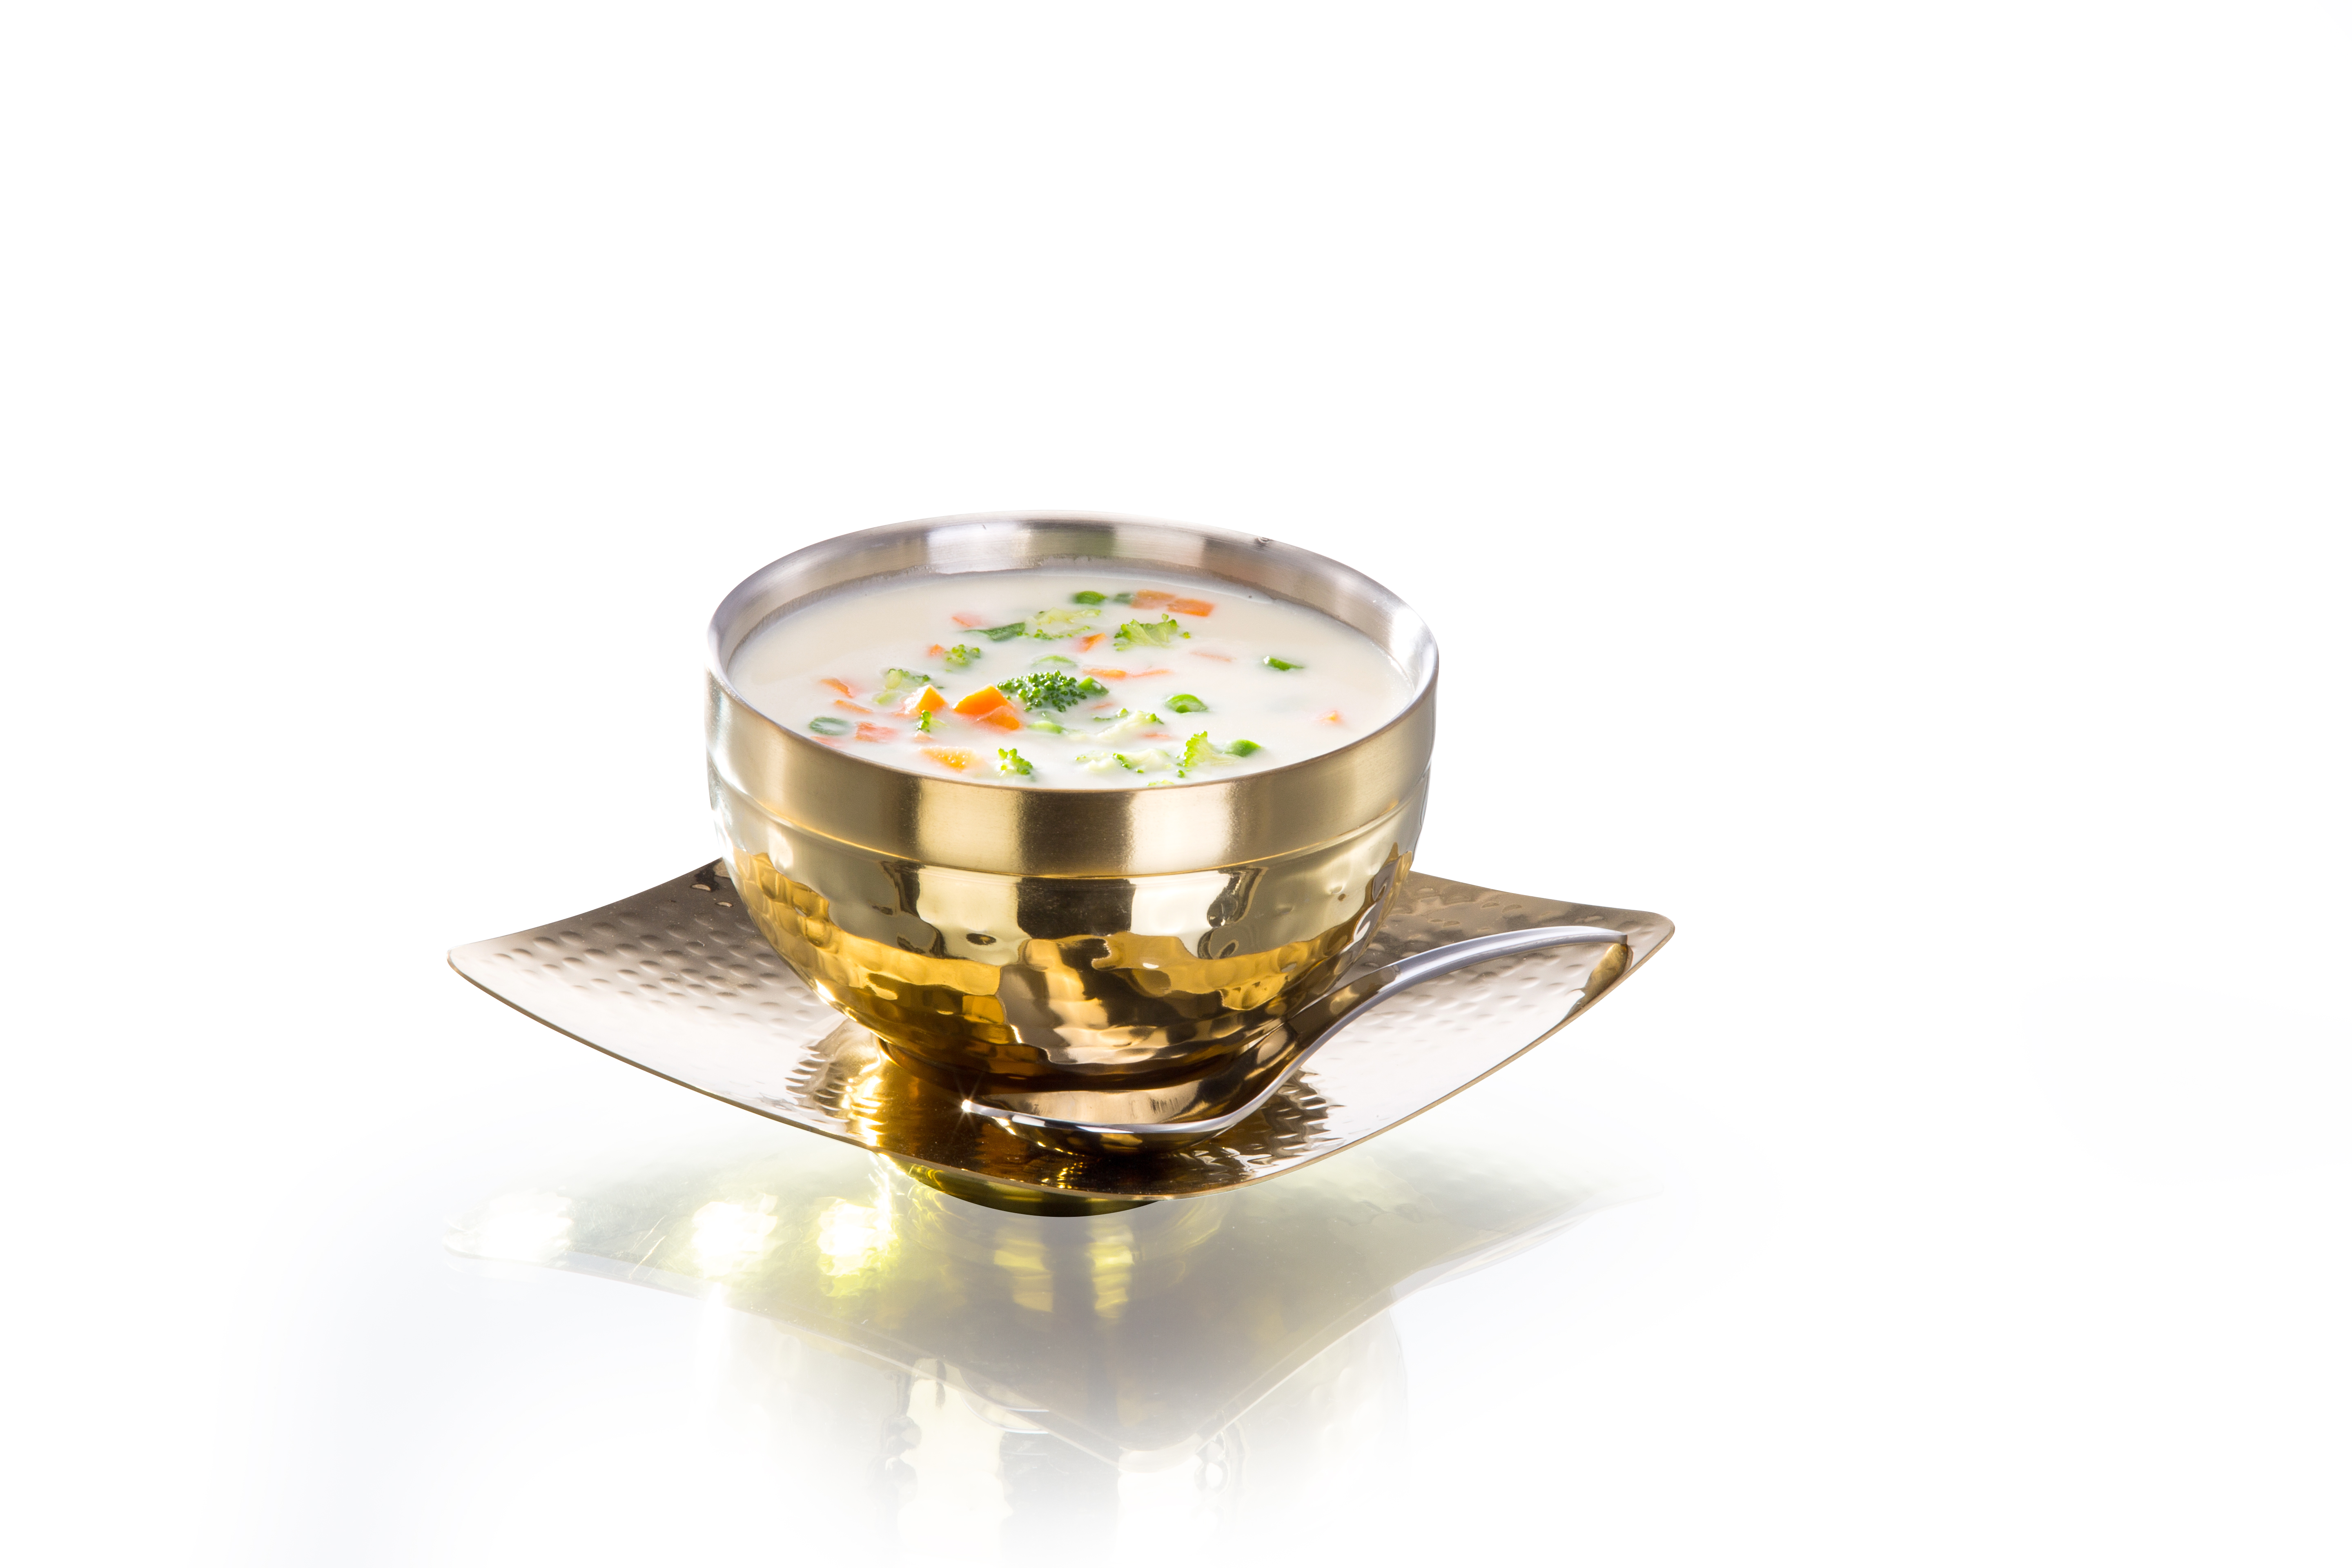 Soup Bowl Hammered Gold Titanium Stainless steel Soup Bowls in Gold Colour by Sanjeev Kapoor